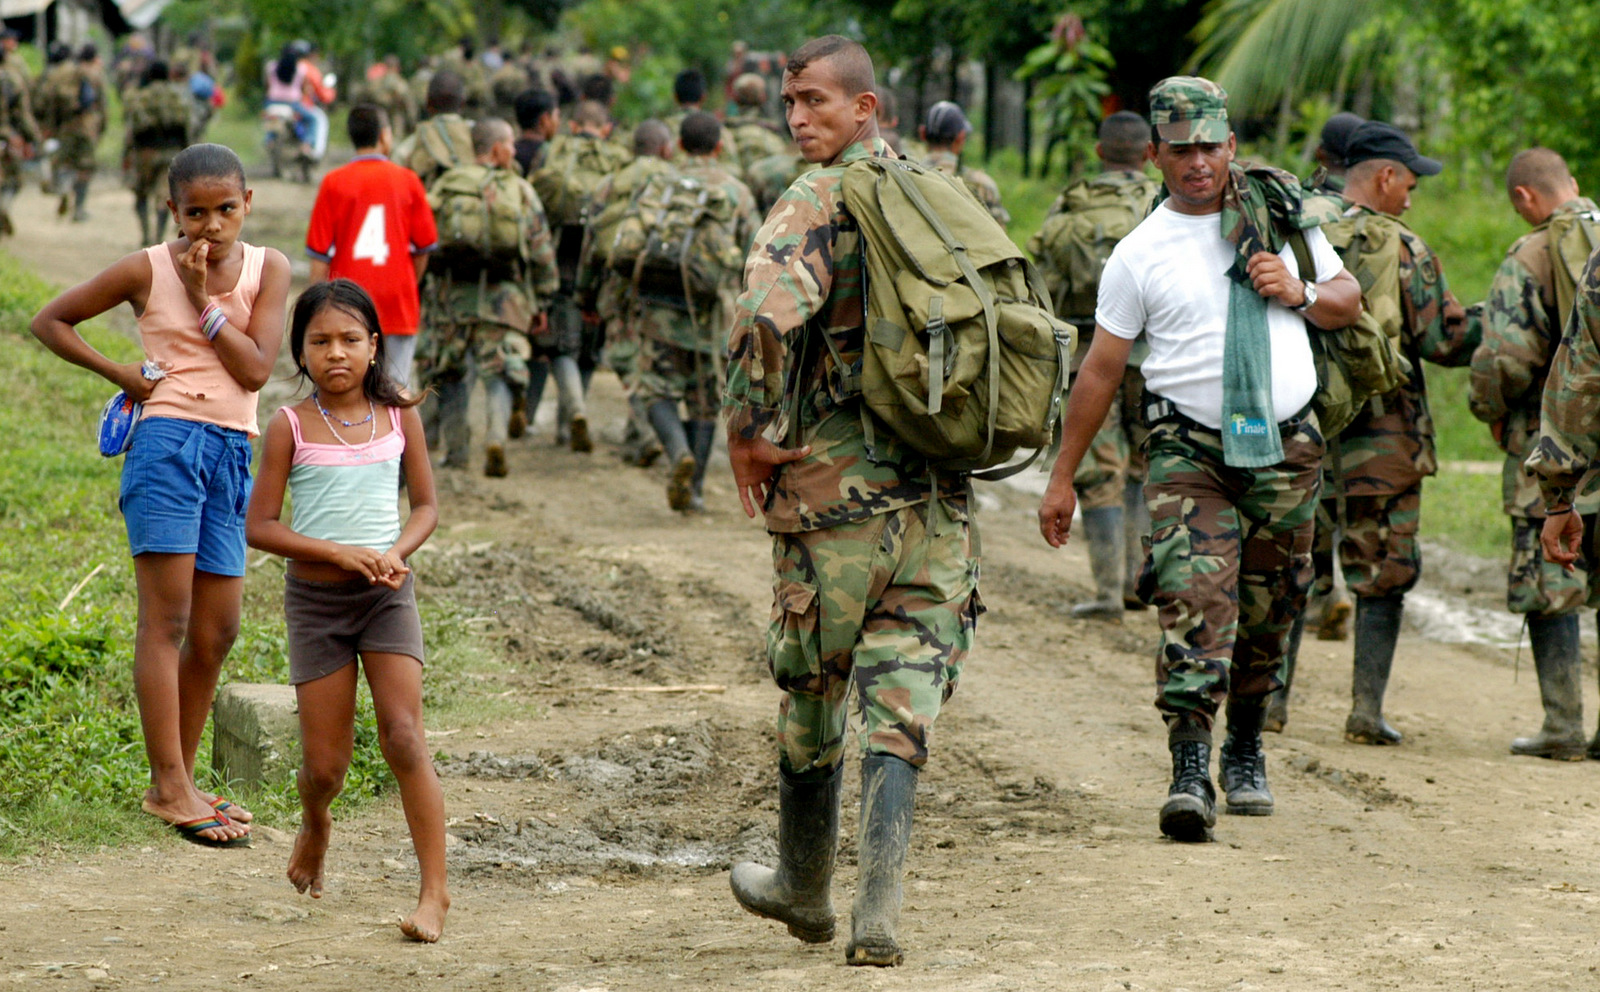 In this photograph provided by the El Tiempo newspaper, paramilitary fighters of the